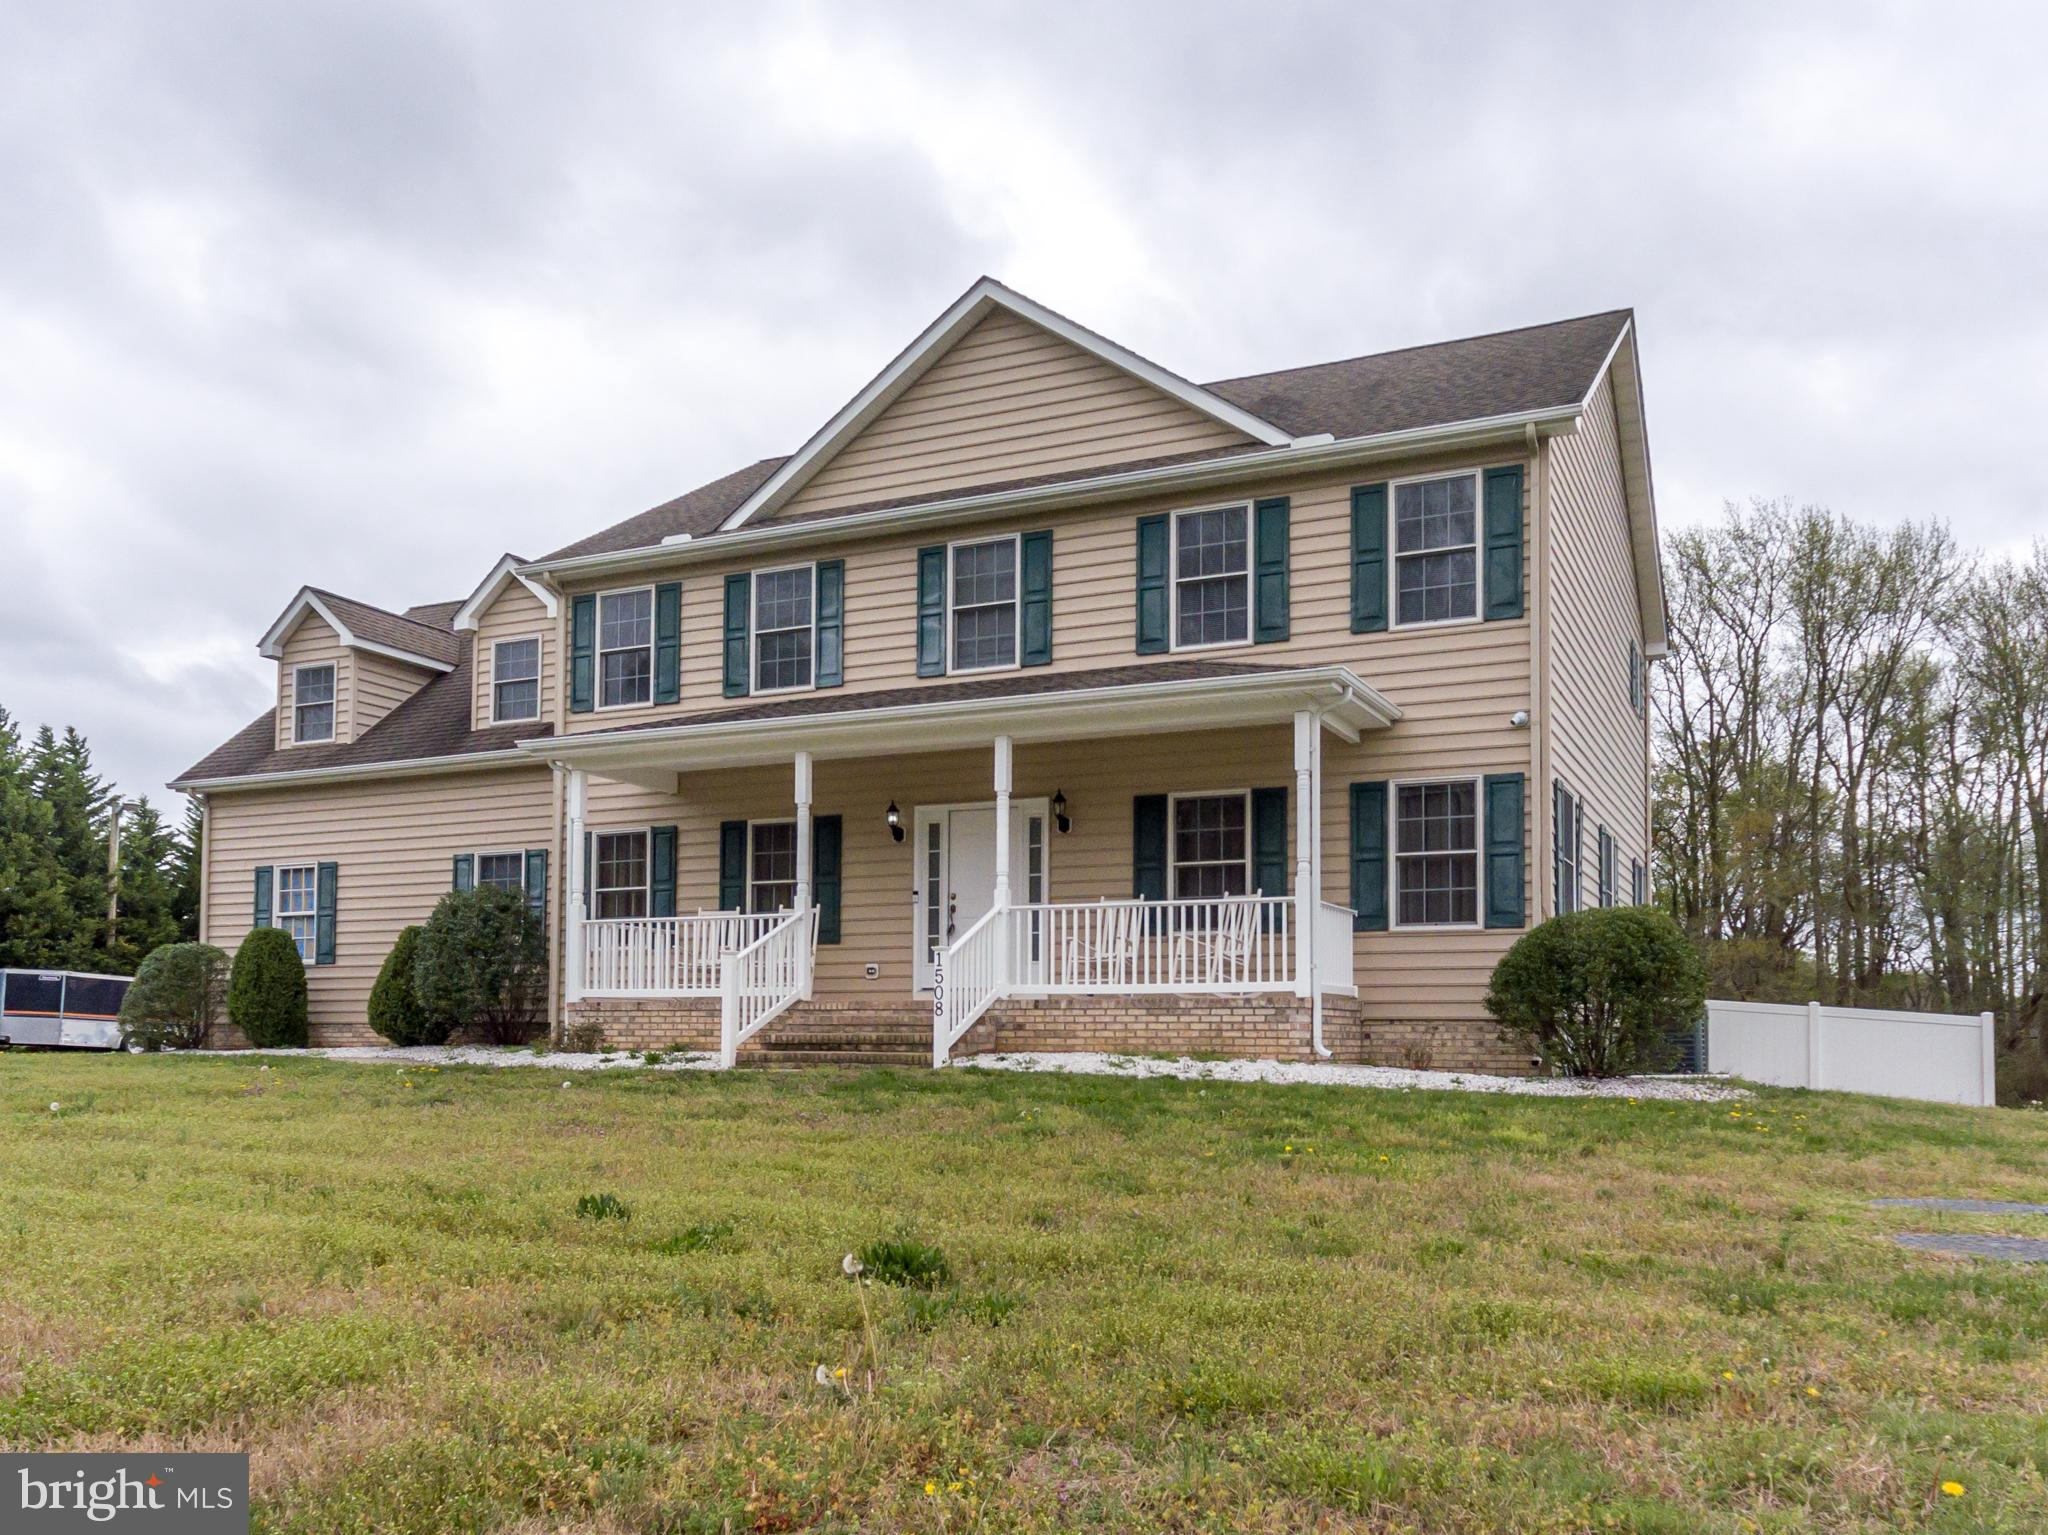 1508 HALLTOWN ROAD, MARYDEL, DE 19964